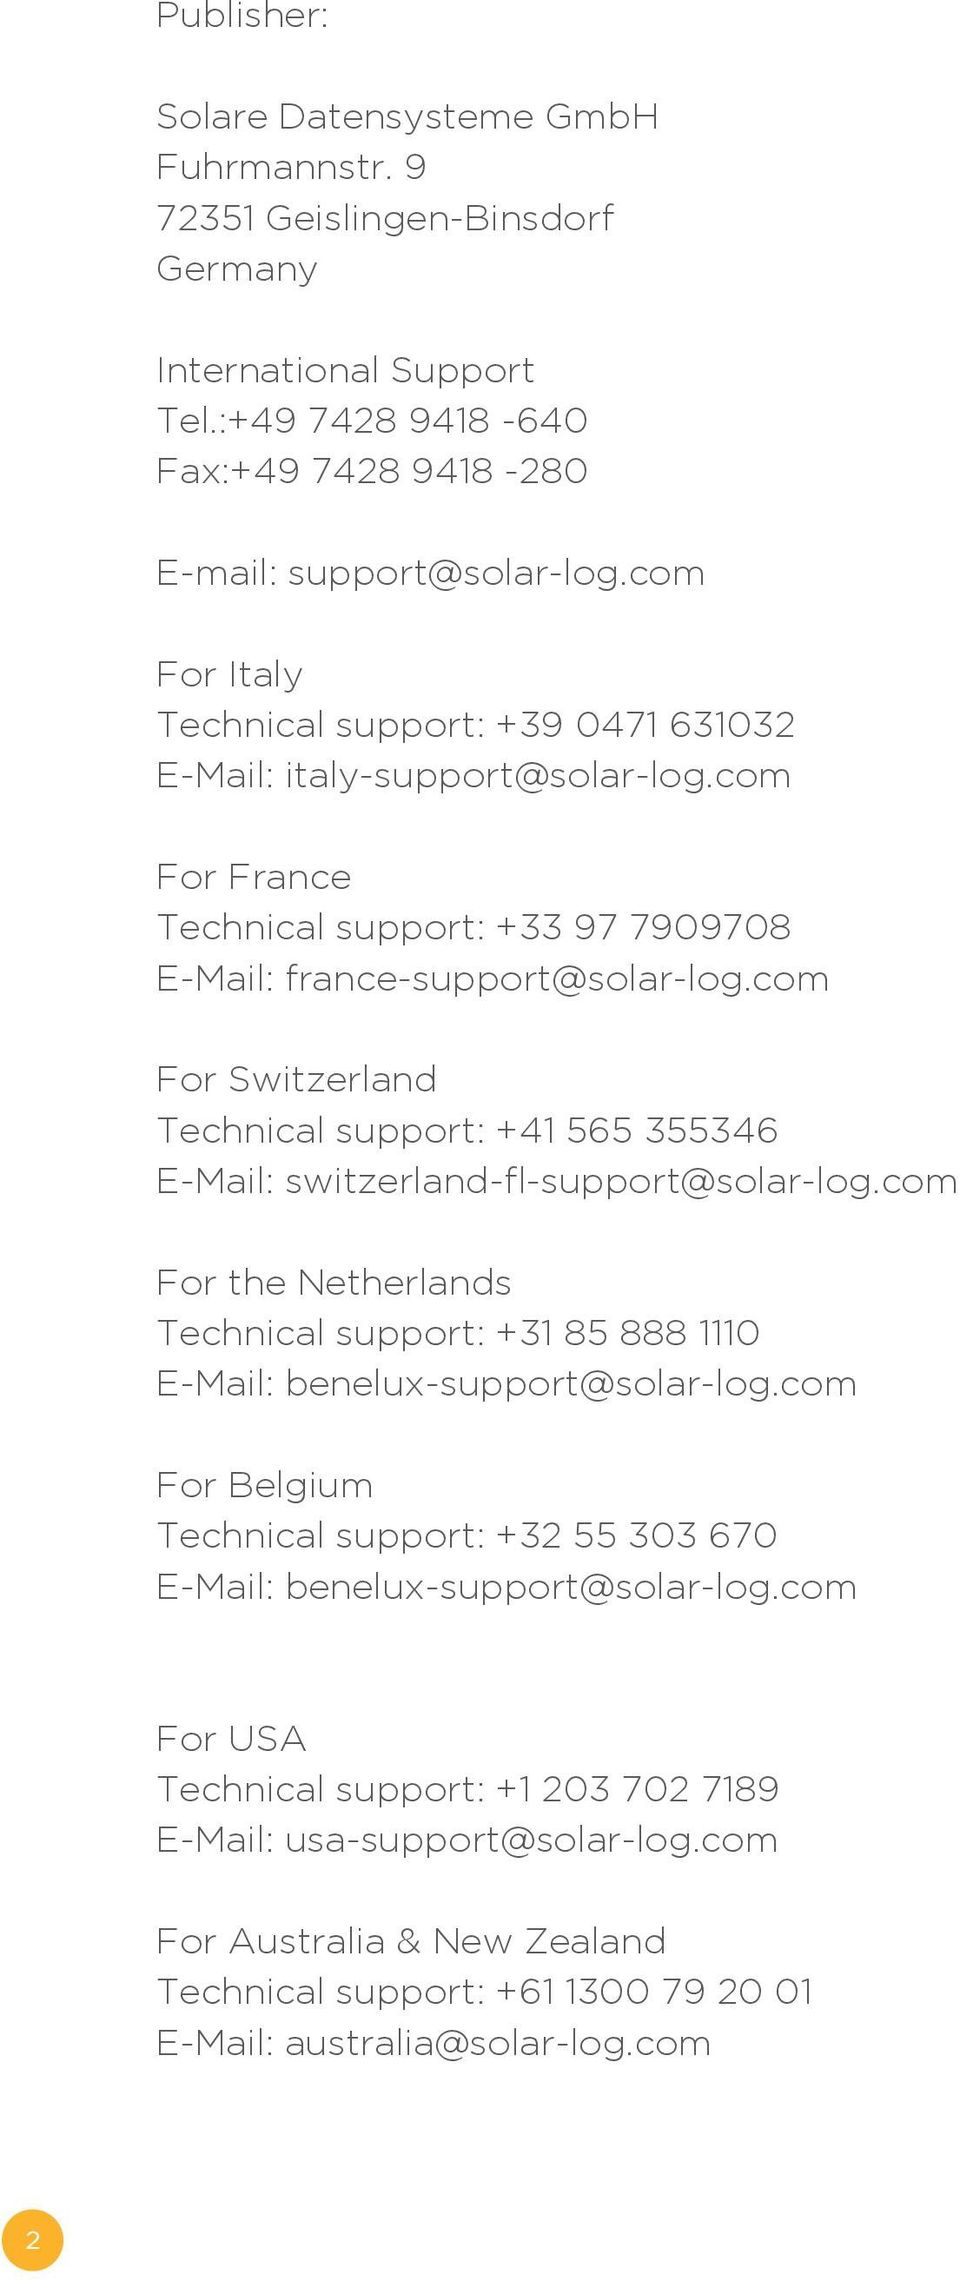 com For Switzerland Technical support: +41 565 355346 E-Mail: switzerland-fl-support@solar-log.com For the Netherlands Technical support: +31 85 888 1110 E-Mail: benelux-support@solar-log.